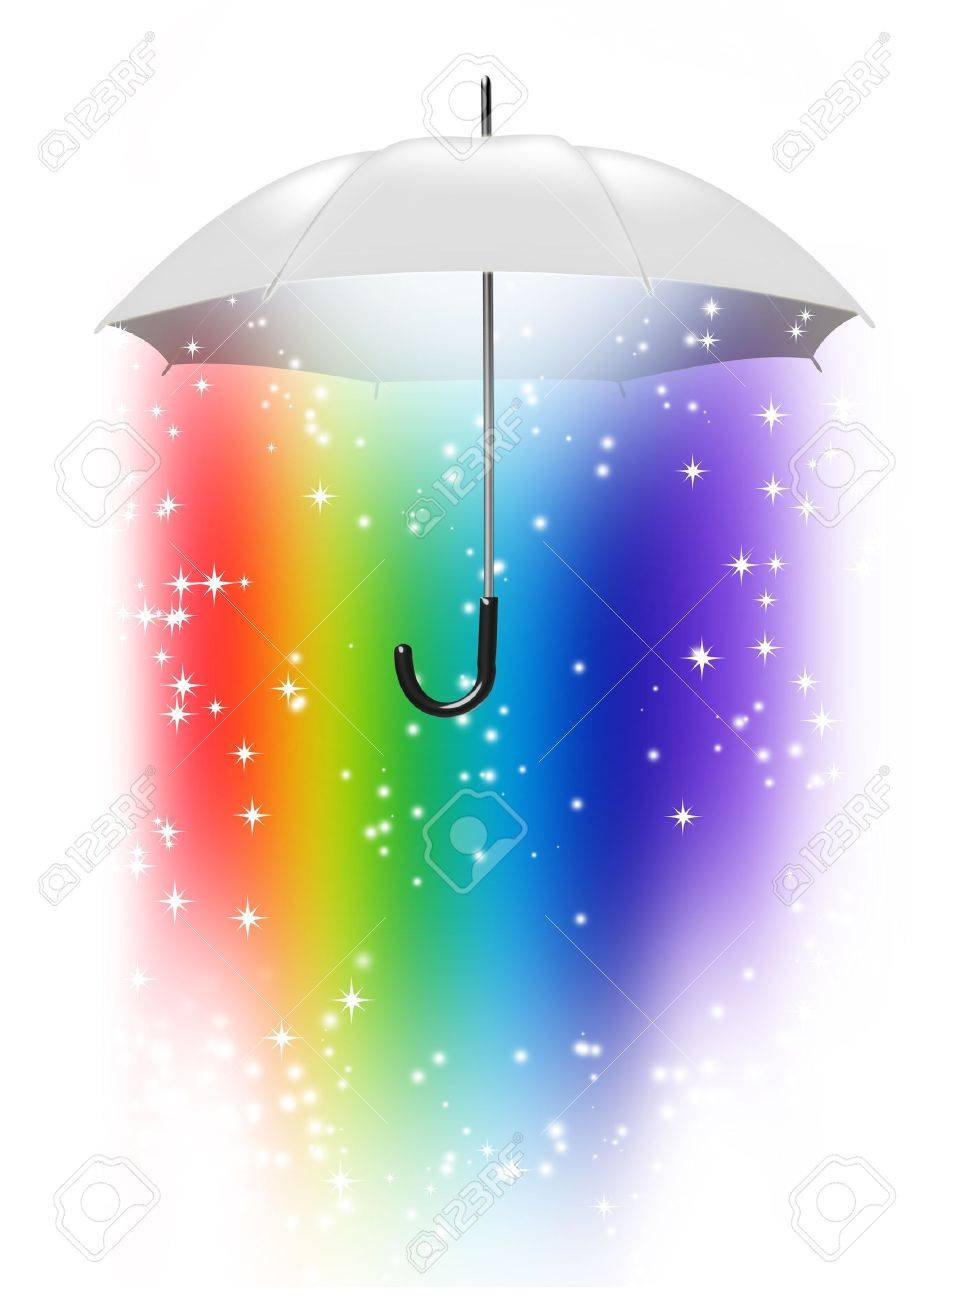 white umbrella with a rainbow inside isolated on white background Stock Photo - 9947045